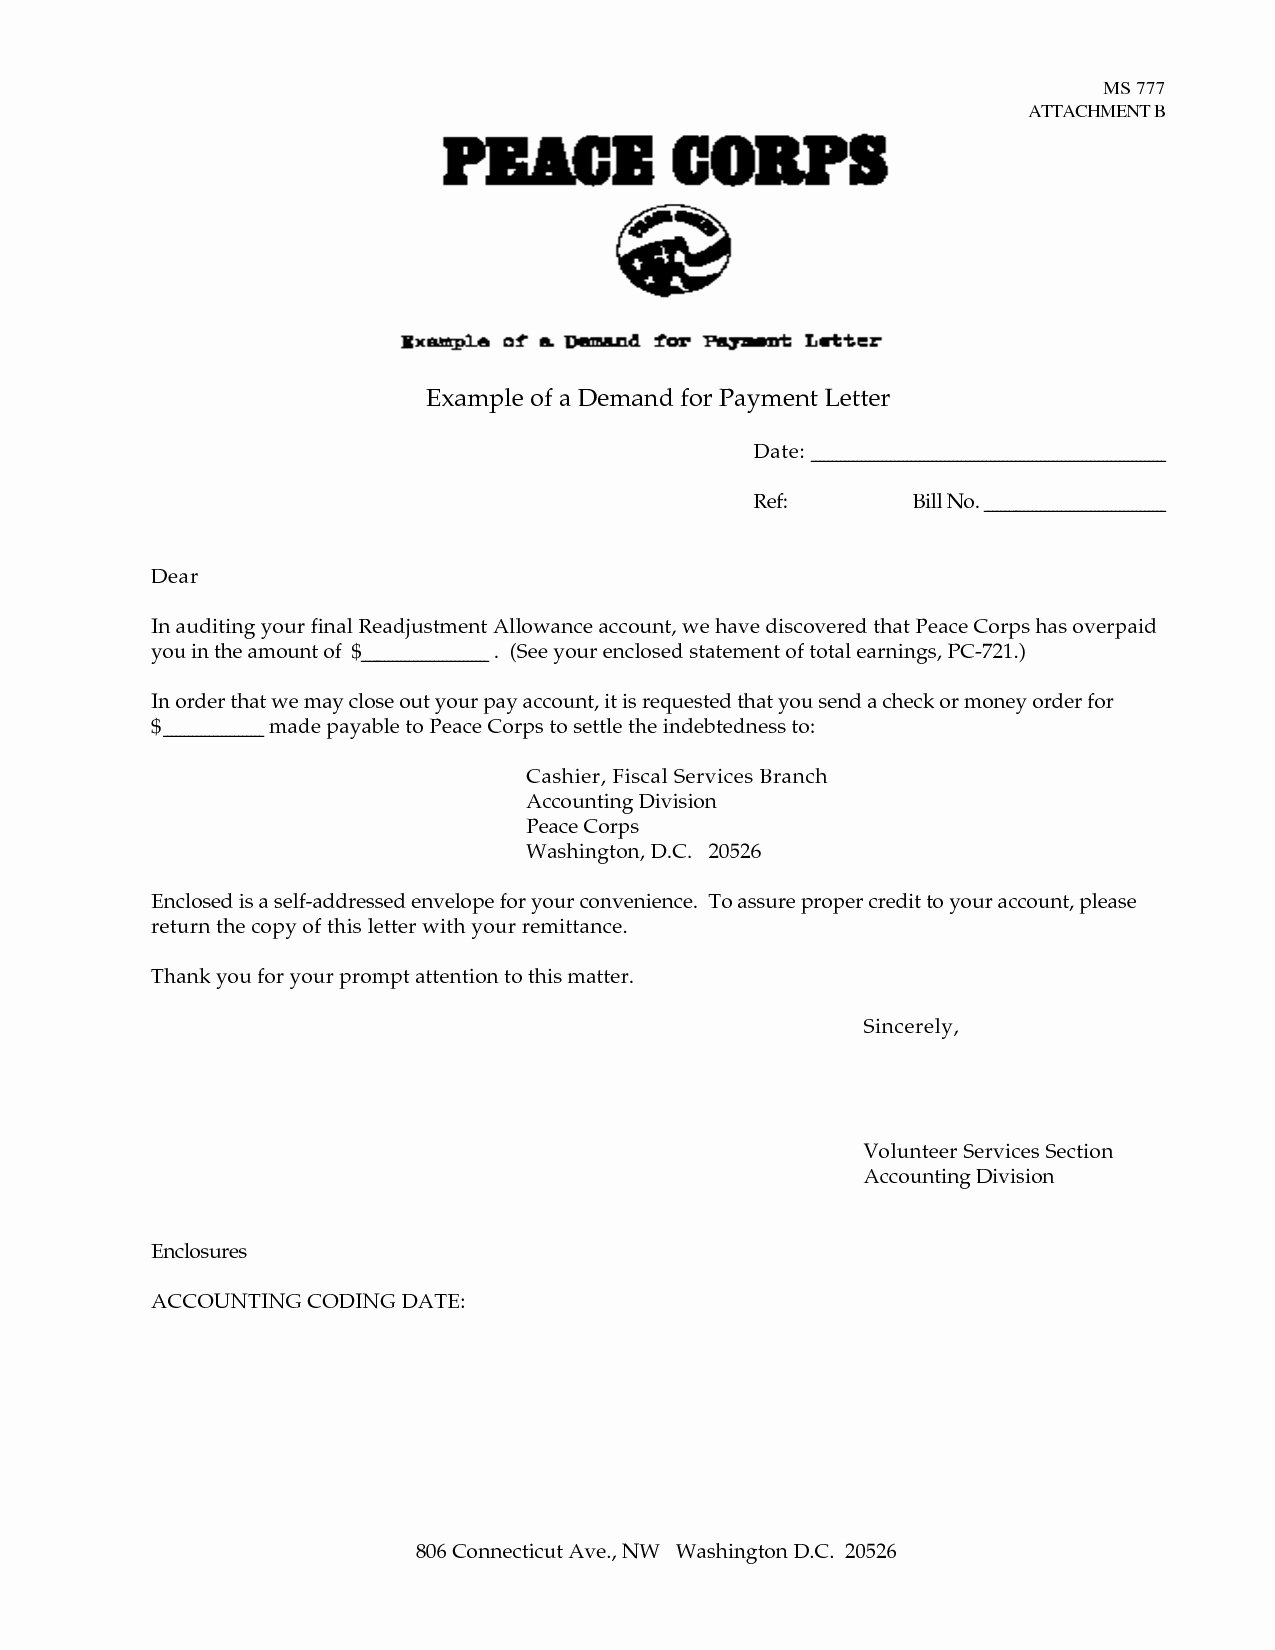 Letter Of Demand Template Inspirational Final Demand for Payment Letter Template Examples